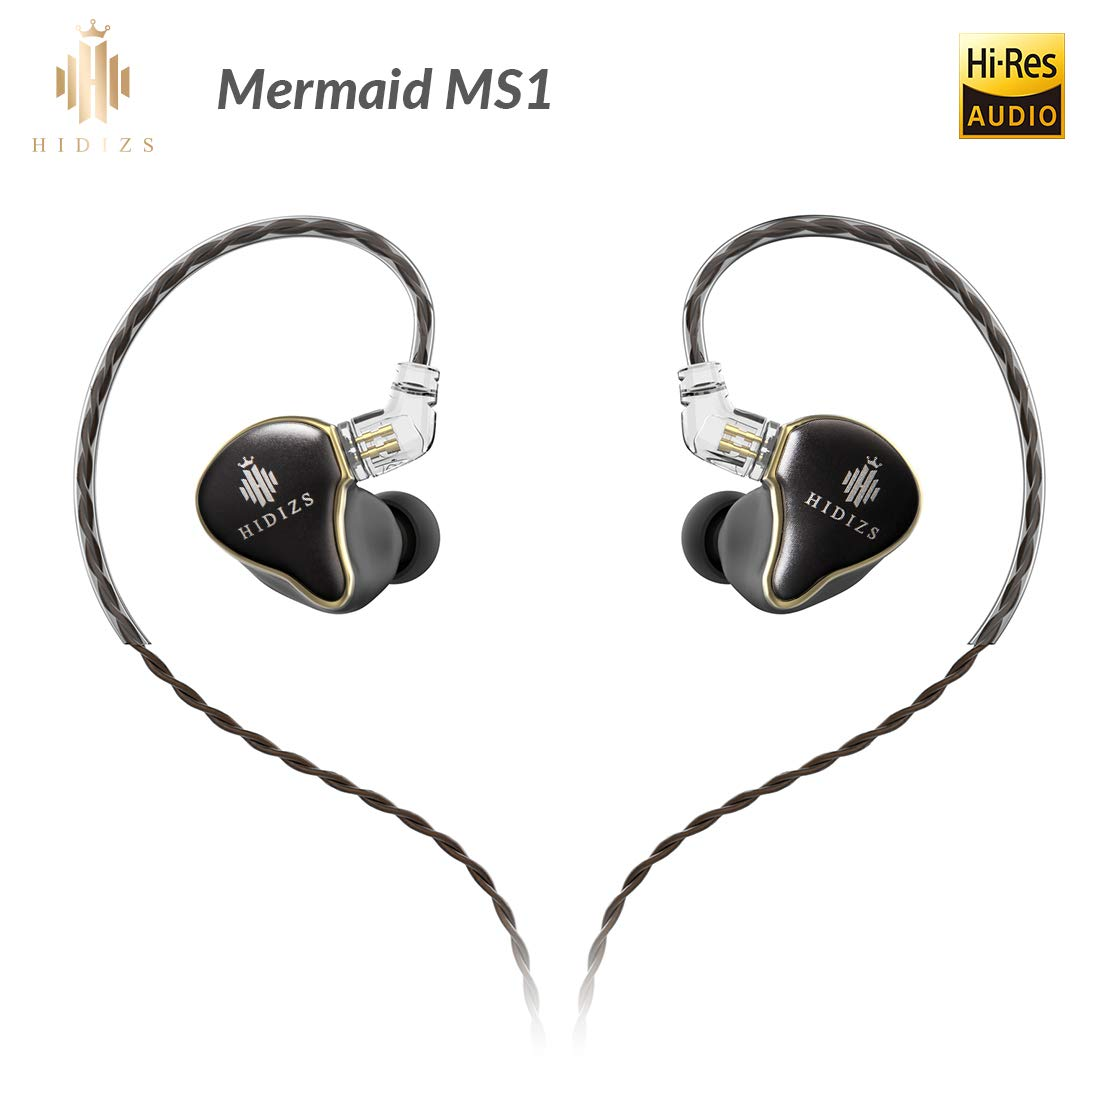 HIDIZS MS1 in-Ear Monitor Headphones, Hi Res Headphones Wired Audiophile, Dynamic Diaphragm Hi-Fi IEM Earphones with Detachable Cable (Black)